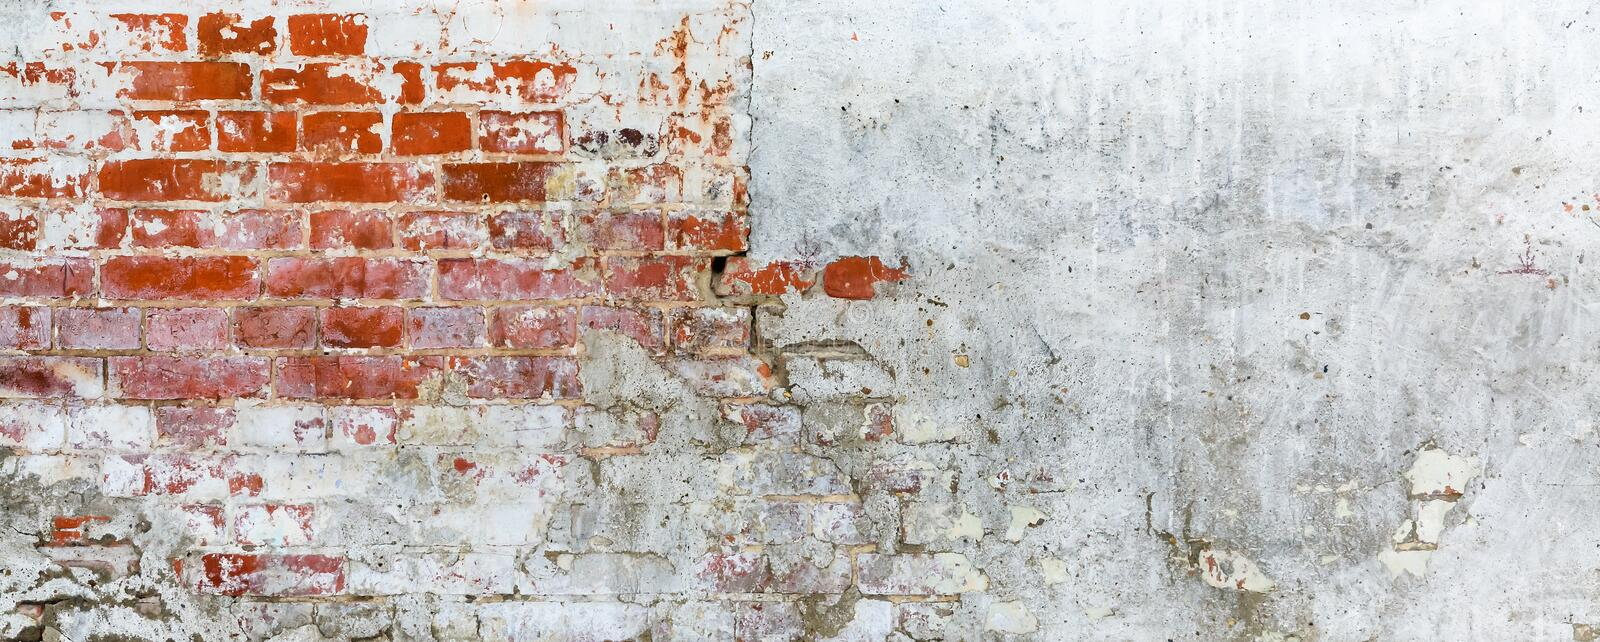 Vintage brick rough rustic wall with cracked plaster stock photos